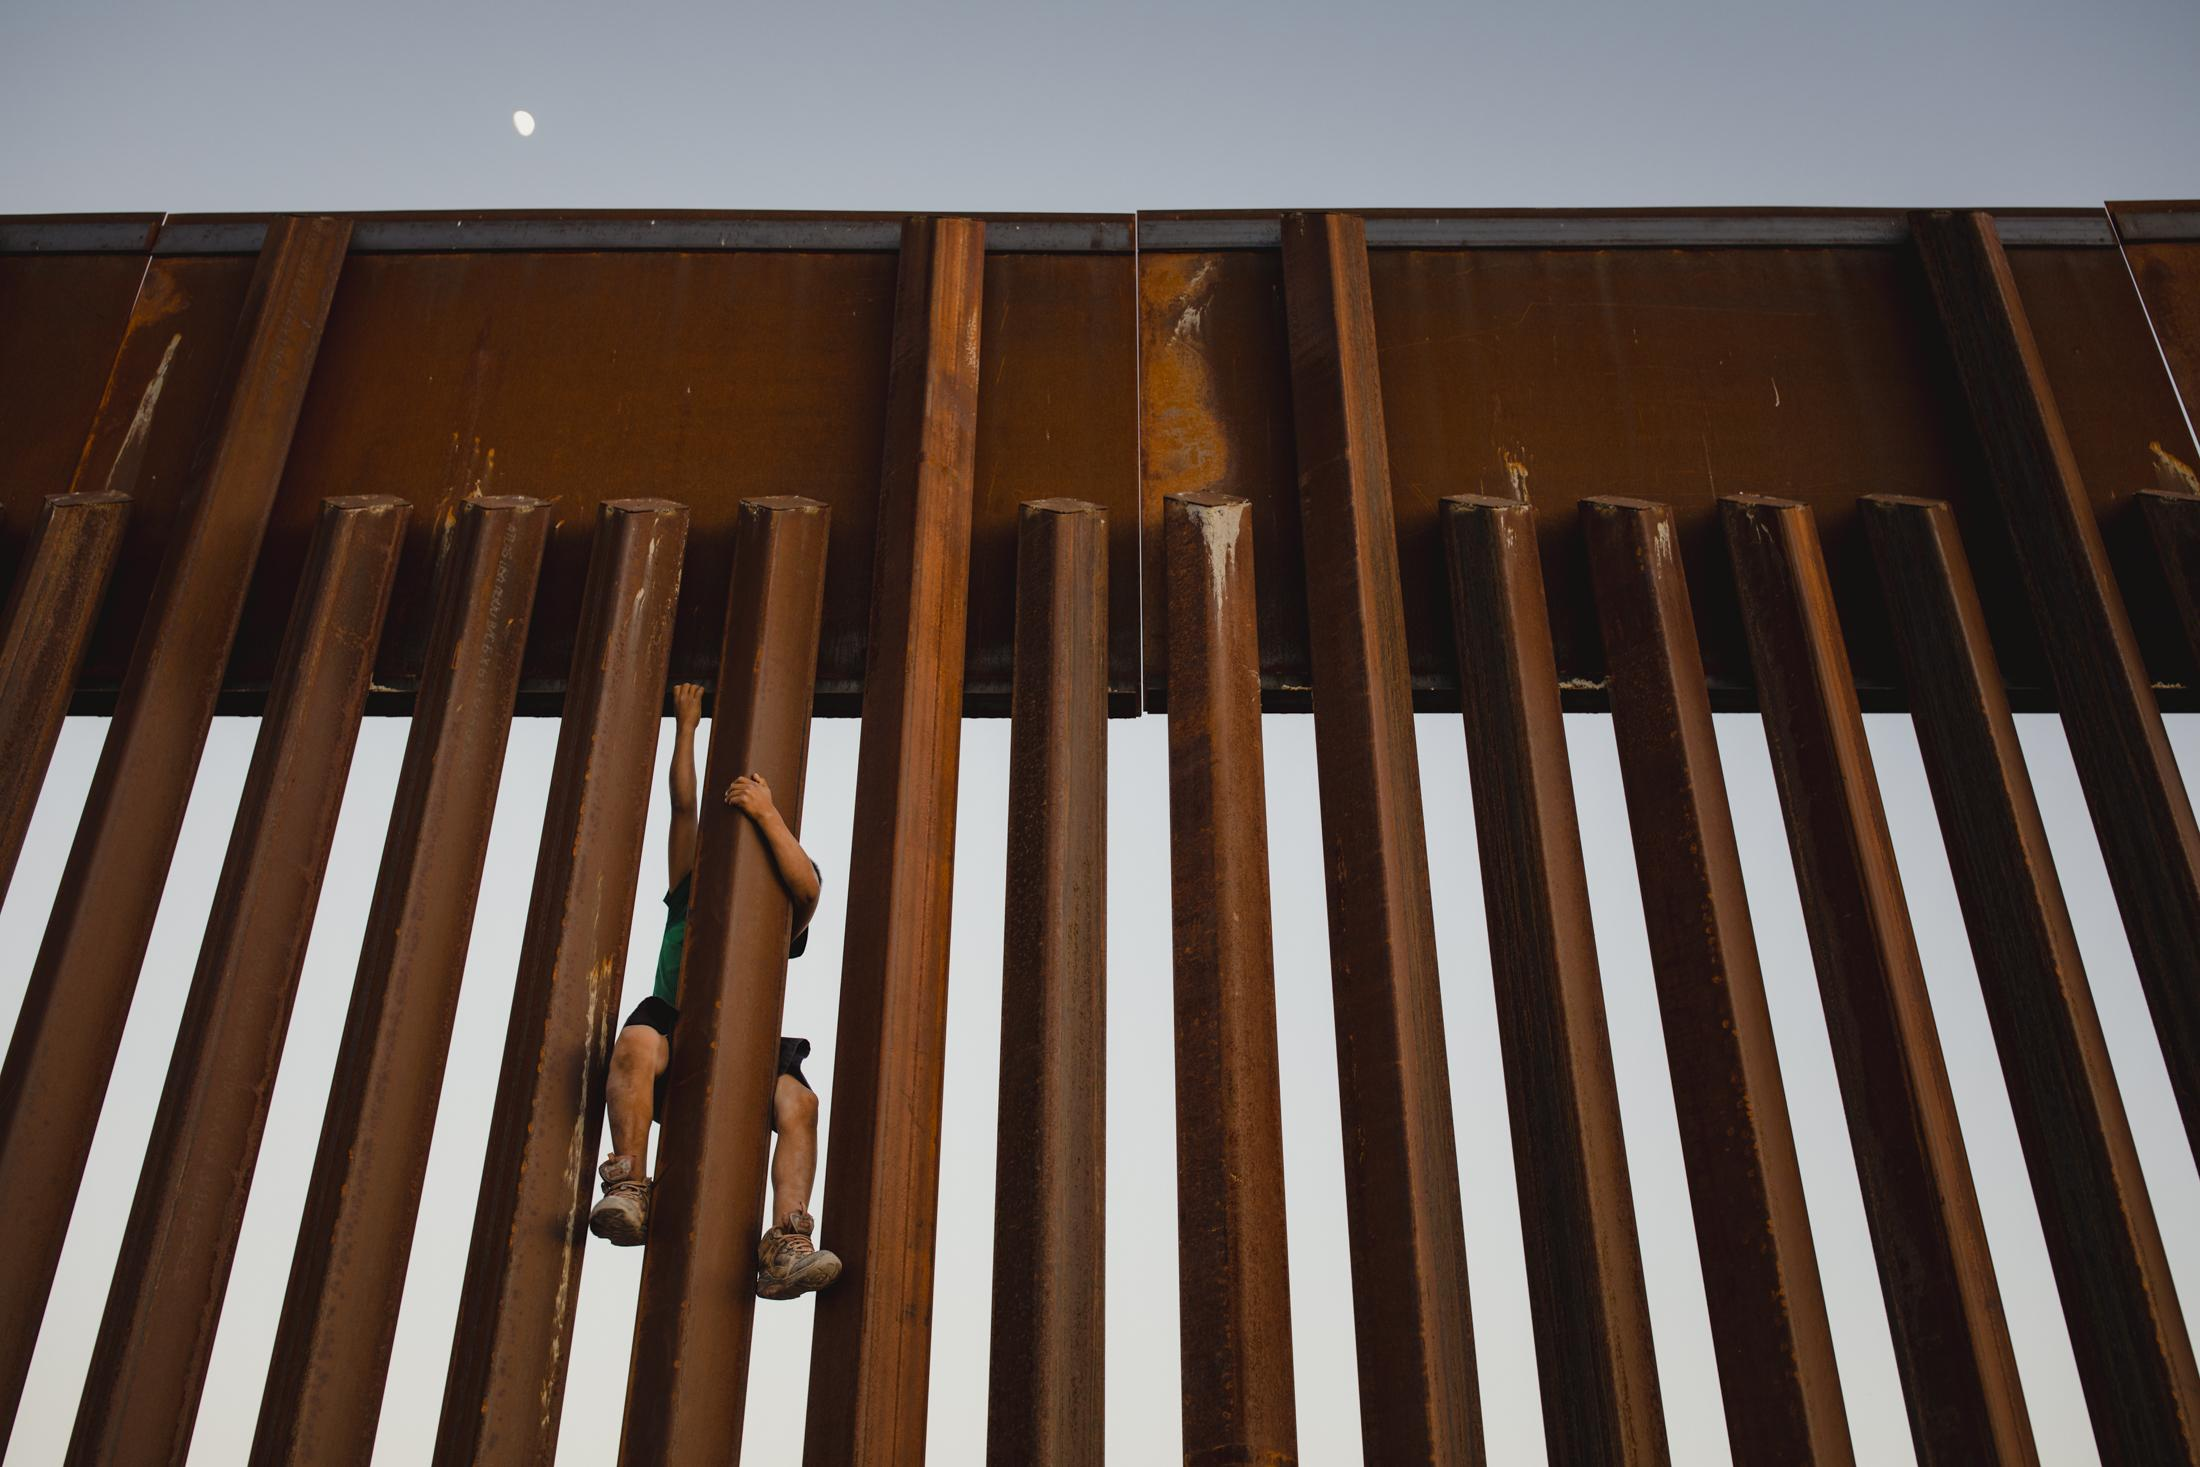 A young boy climbs the Mexican and United States border fence in Sunland Park, New Mexico in the summer of 2018.